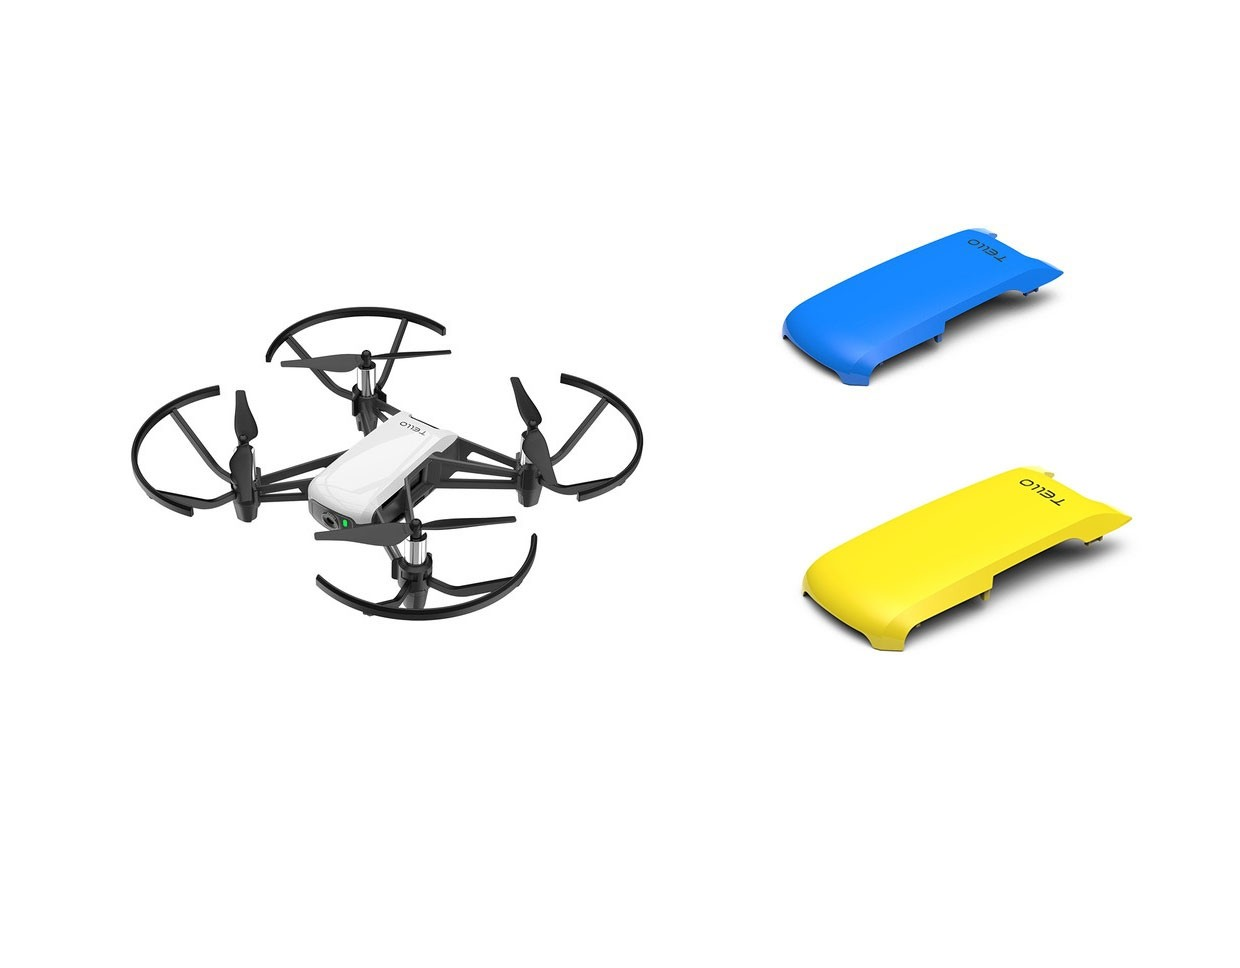 Powered By DJI Tello Minidrone Quadcopter with Yellow & Blue Covers